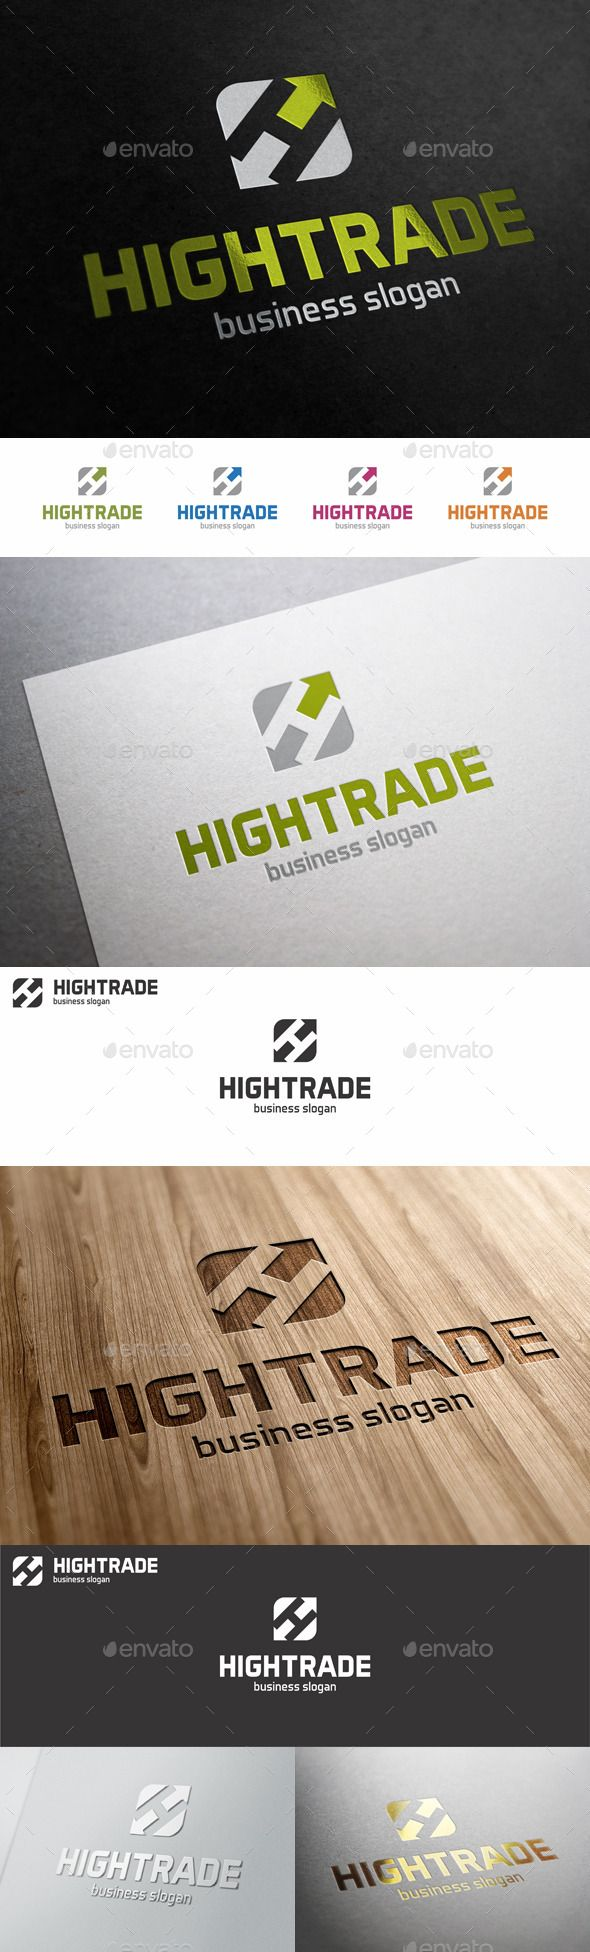 High Trade H Letter Logo Template — Vector EPS #media #web • Available here → https://graphicriver.net/item/high-trade-h-letter-logo-template/10668724?ref=pxcr